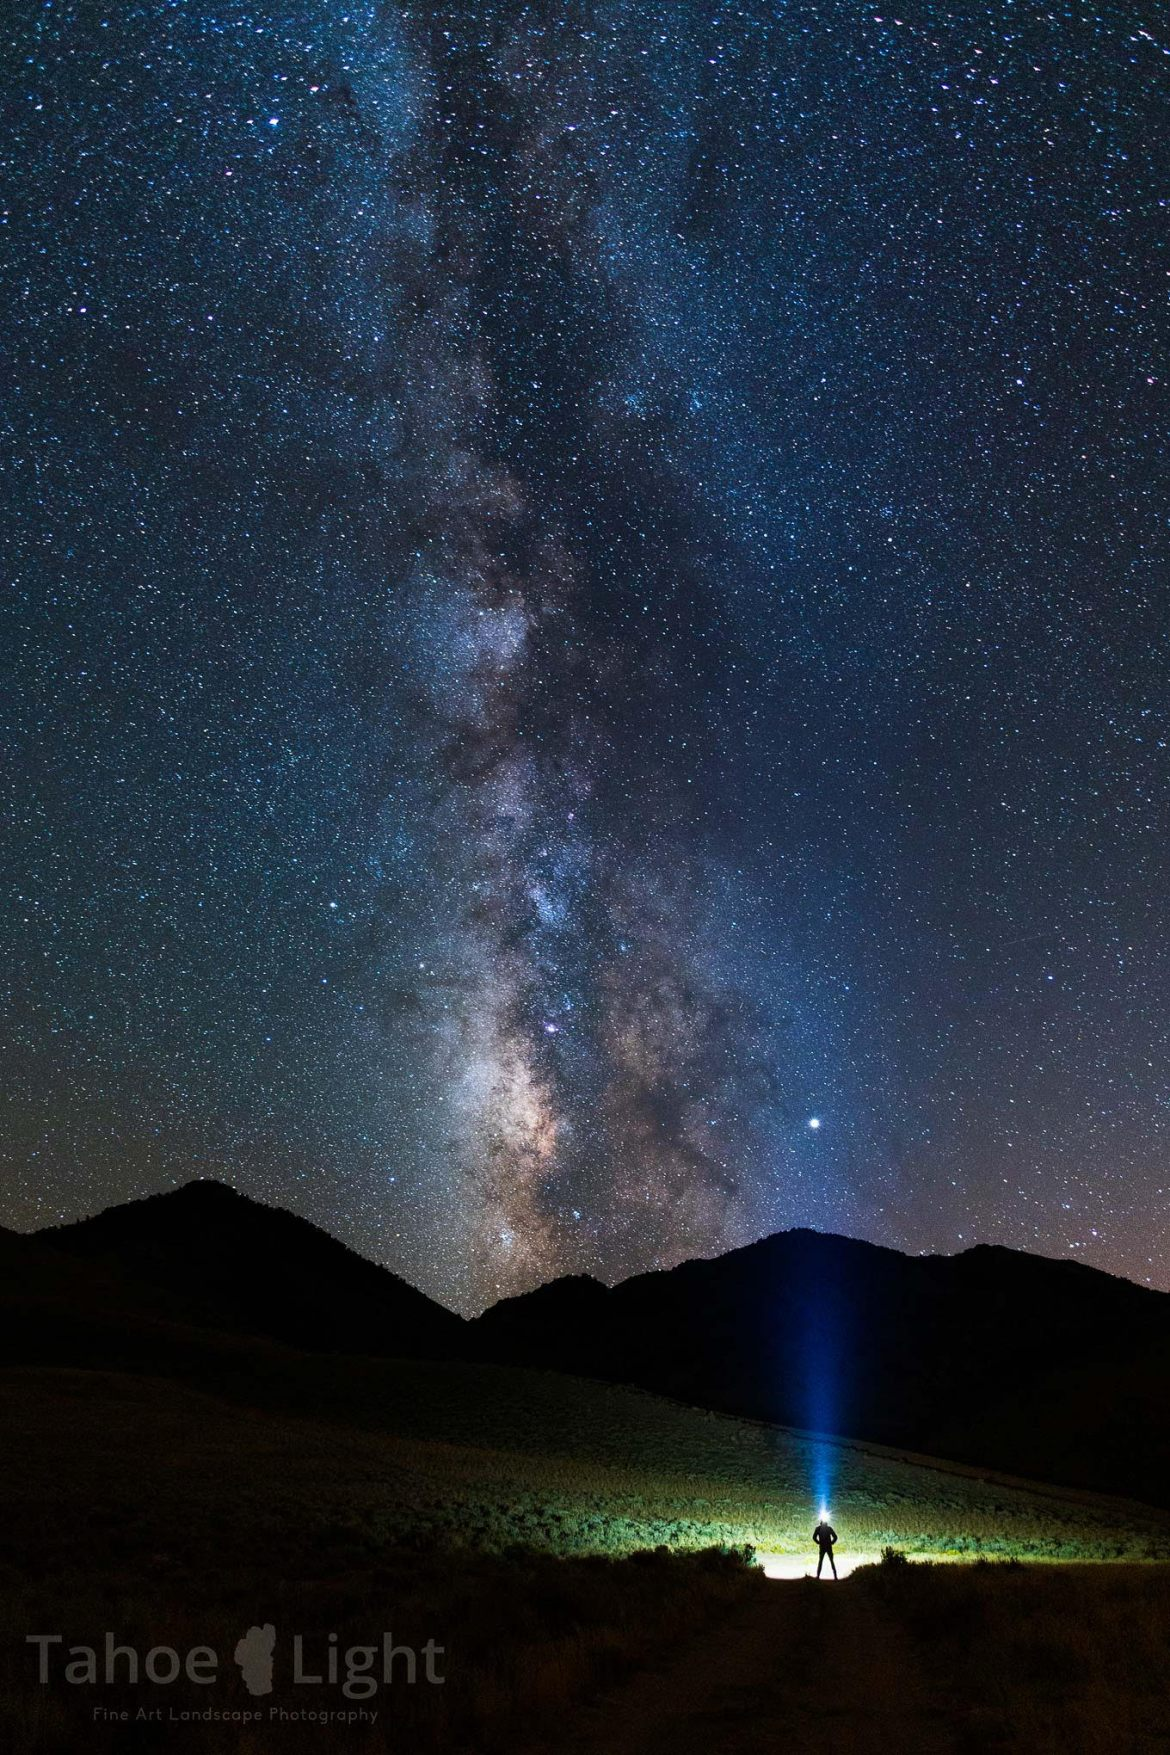 The Milky Way stretches across the night sky with a person with a bright headlamp standing with hands on hips in front of mountain.